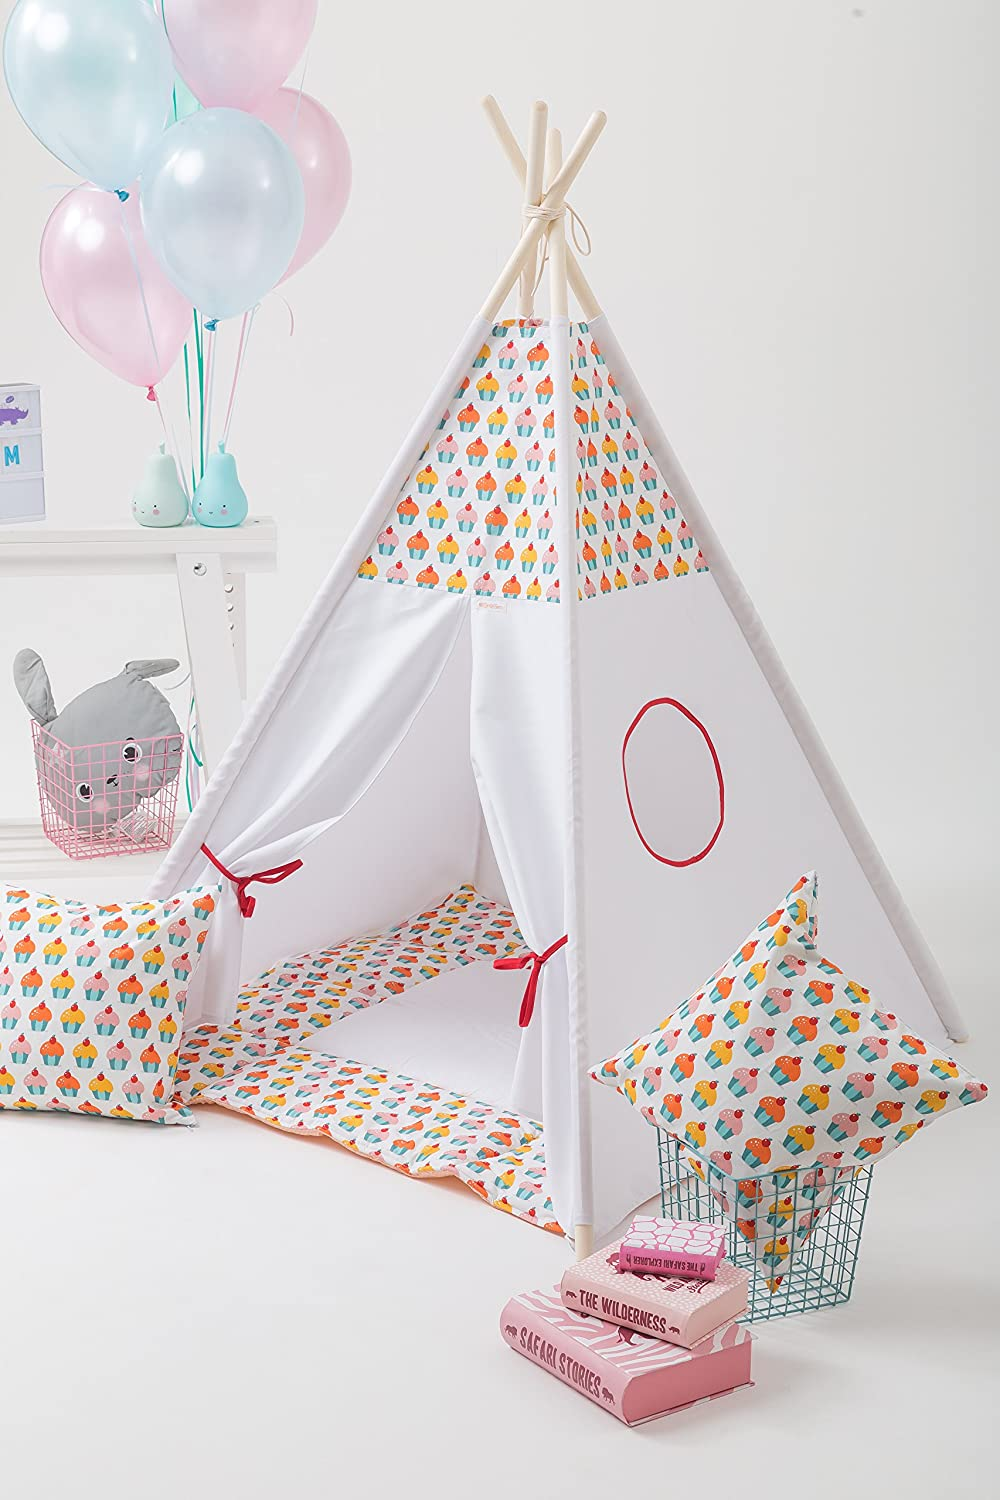 kinder tipi teepee zelt set tipi spieldecke kissen online bestellen. Black Bedroom Furniture Sets. Home Design Ideas